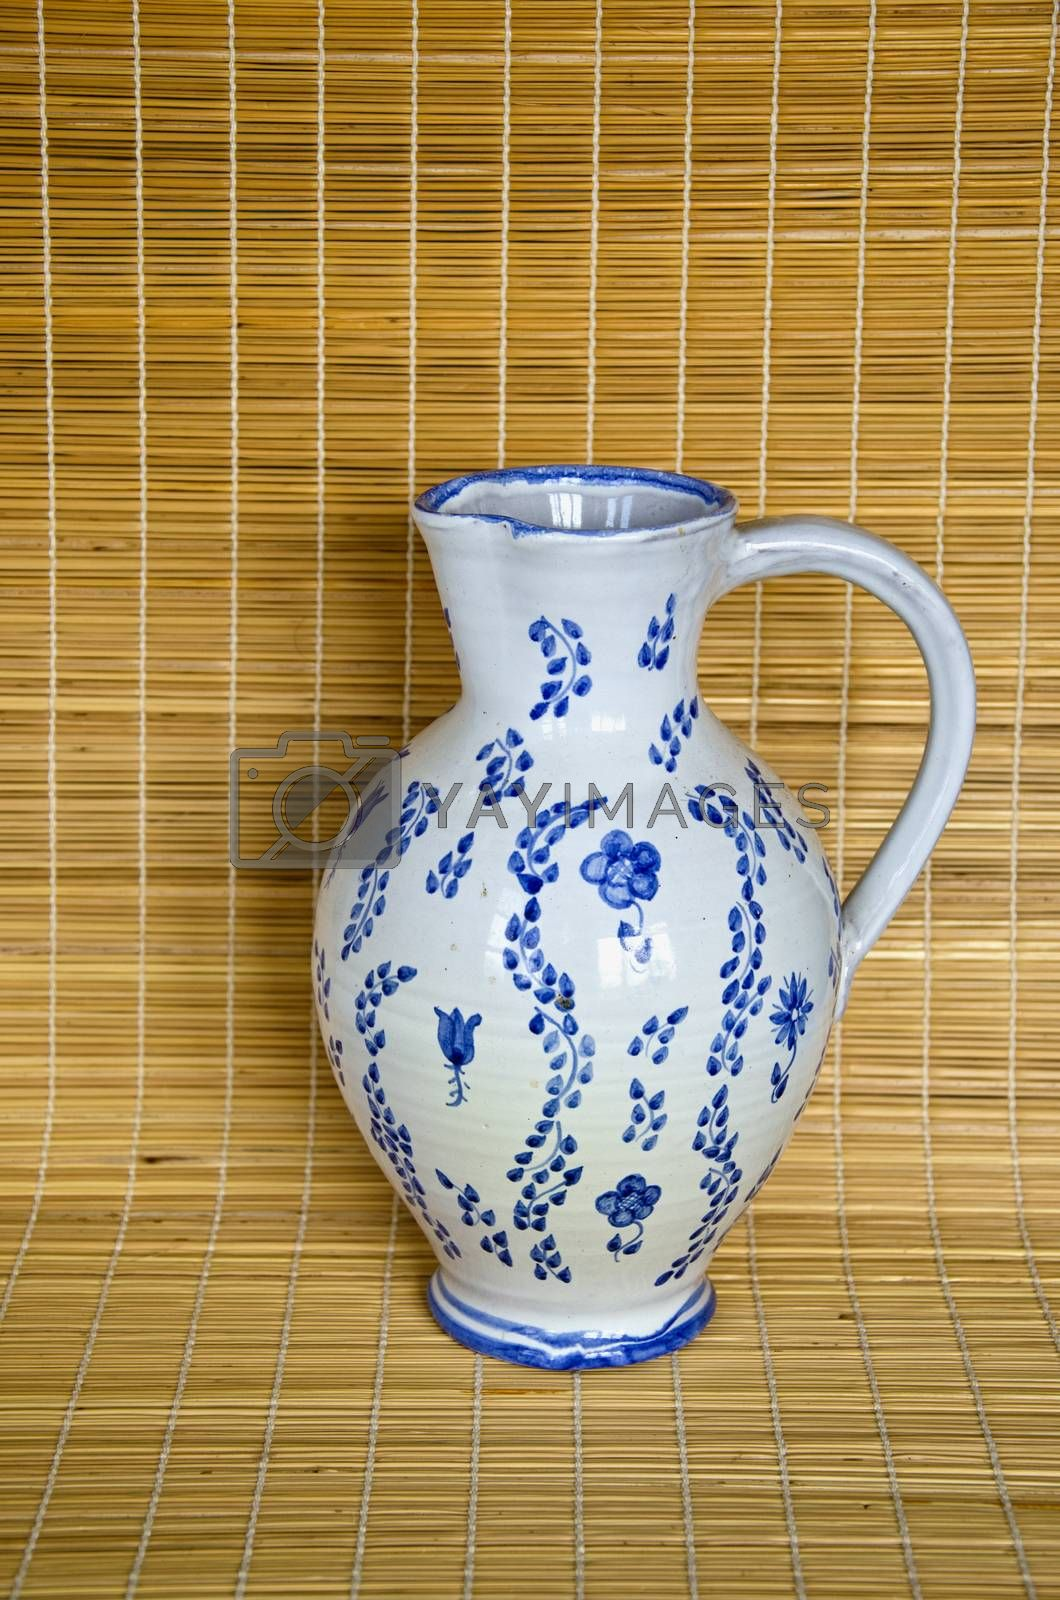 Royalty free image of Clay jug on bamboo material background by alis_photo